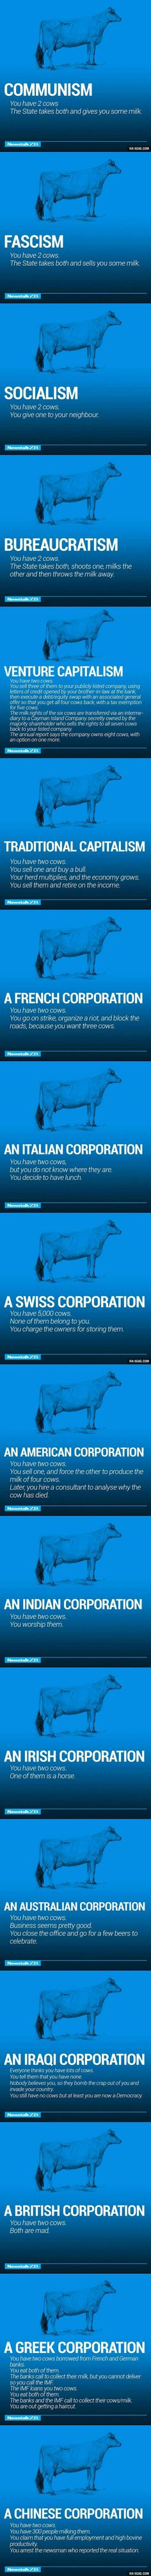 World politics explained through cows